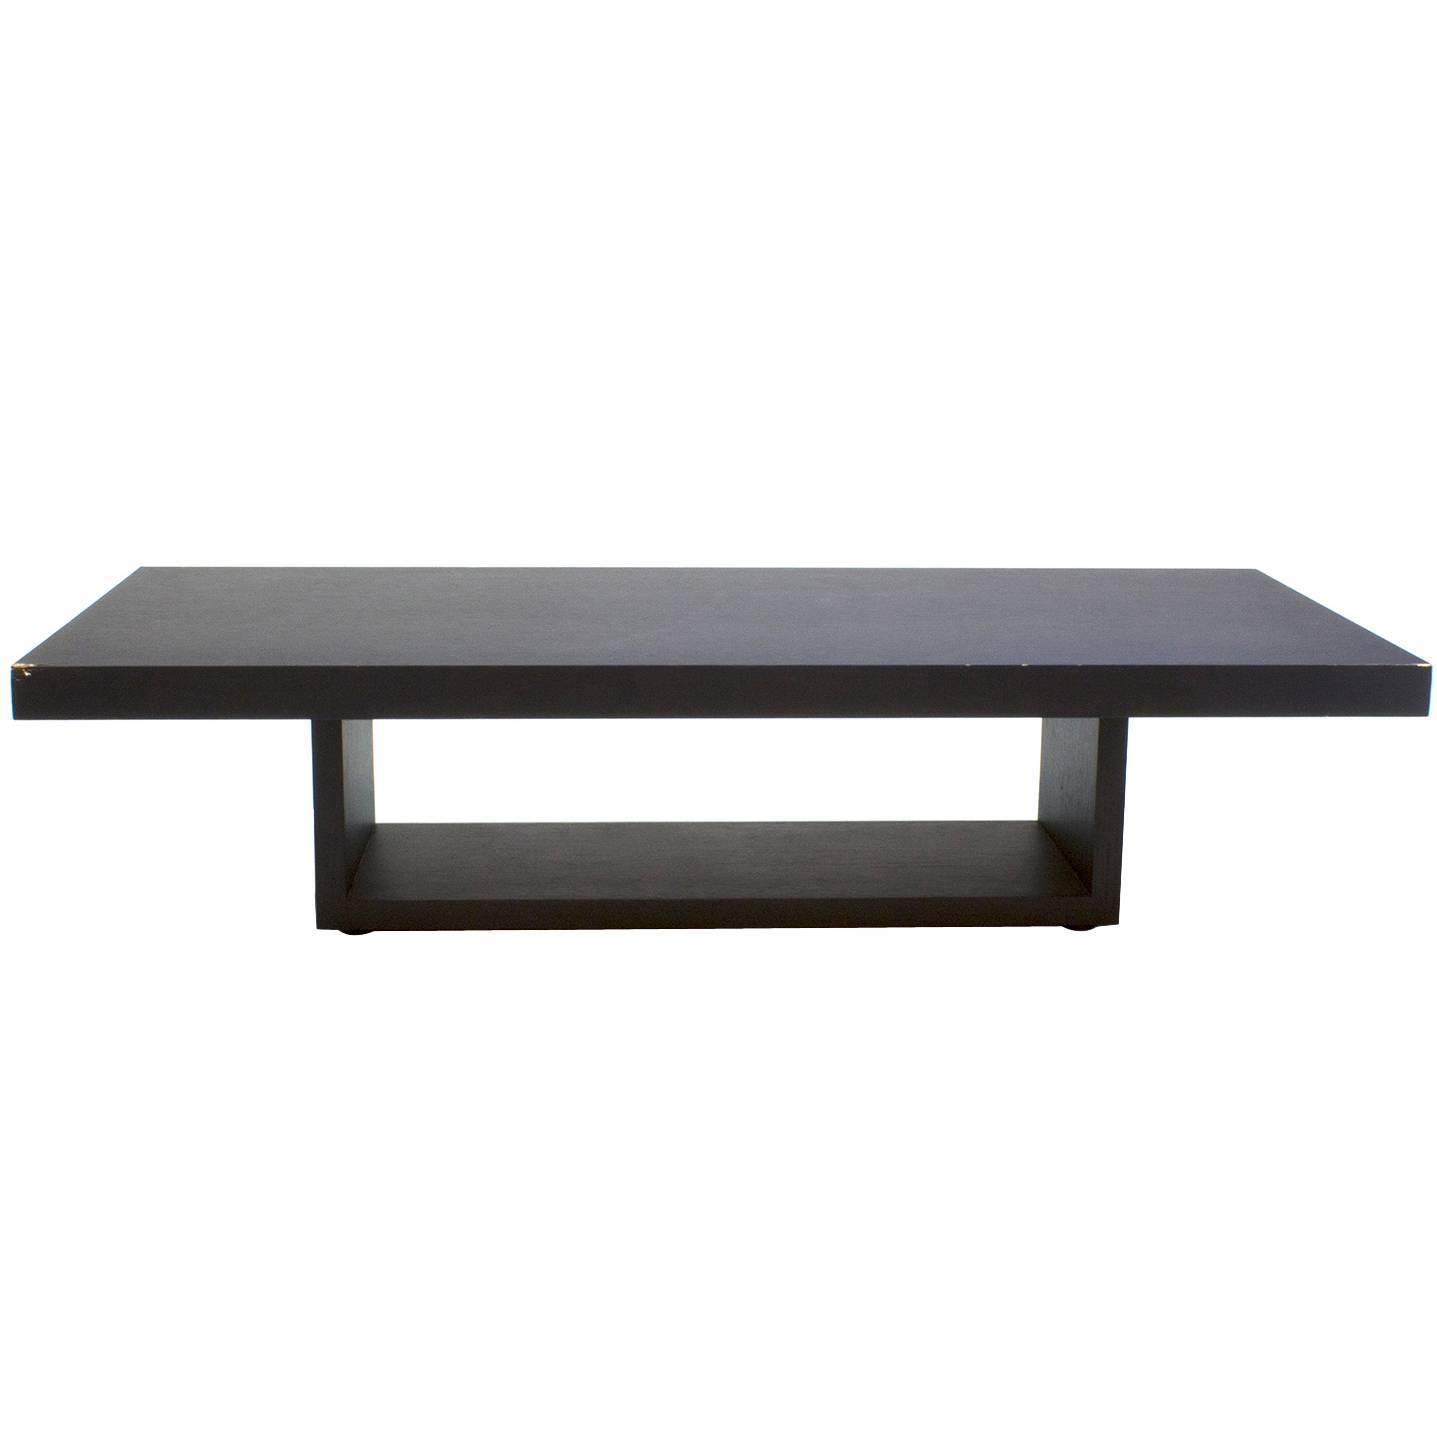 Black Oak Blox Coffee Table by Jehs and Laub for Cassina Italy